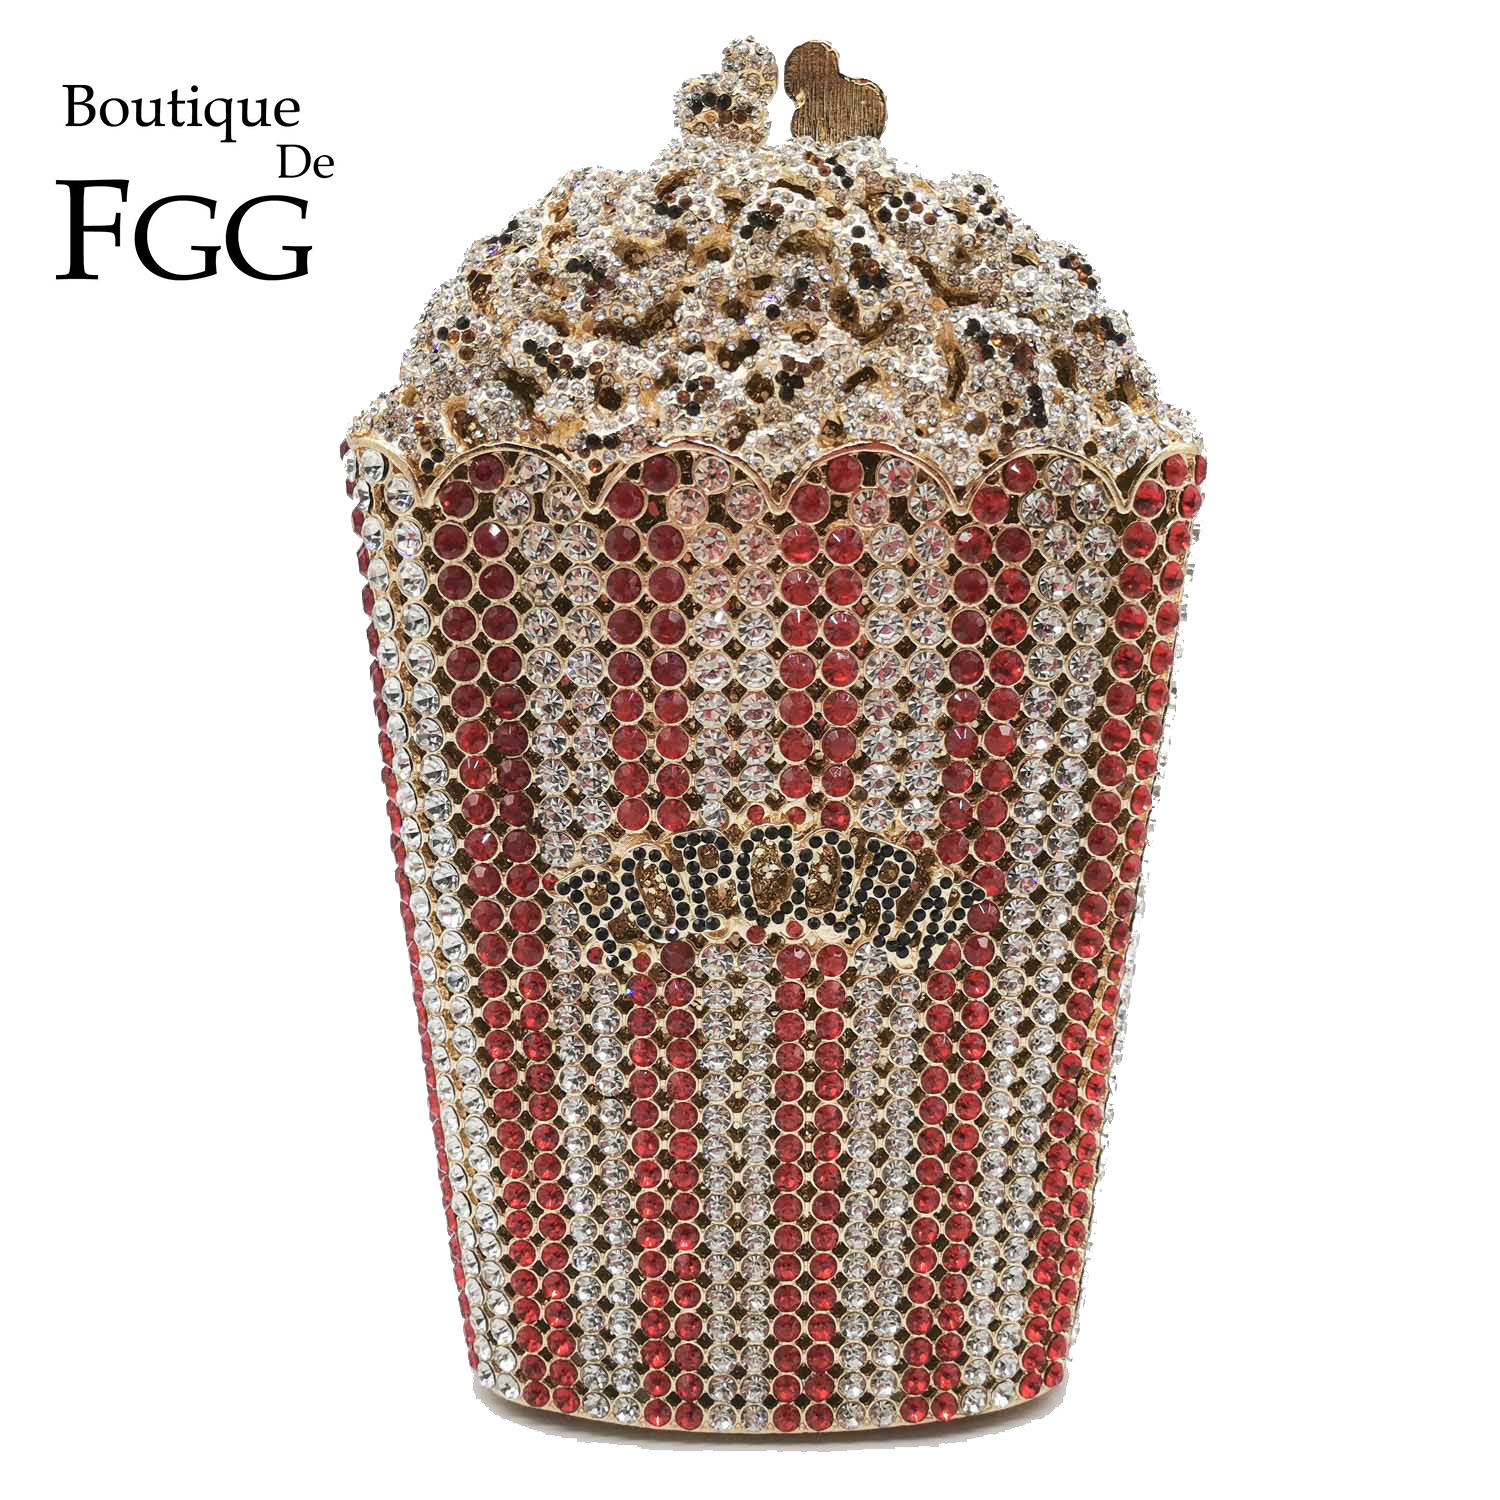 Boutique De FGG Luxury Crystal Women Evening Bags And Clutches Popcorn Minaudiere Clutch Handbag Bridal Wedding Party Purse